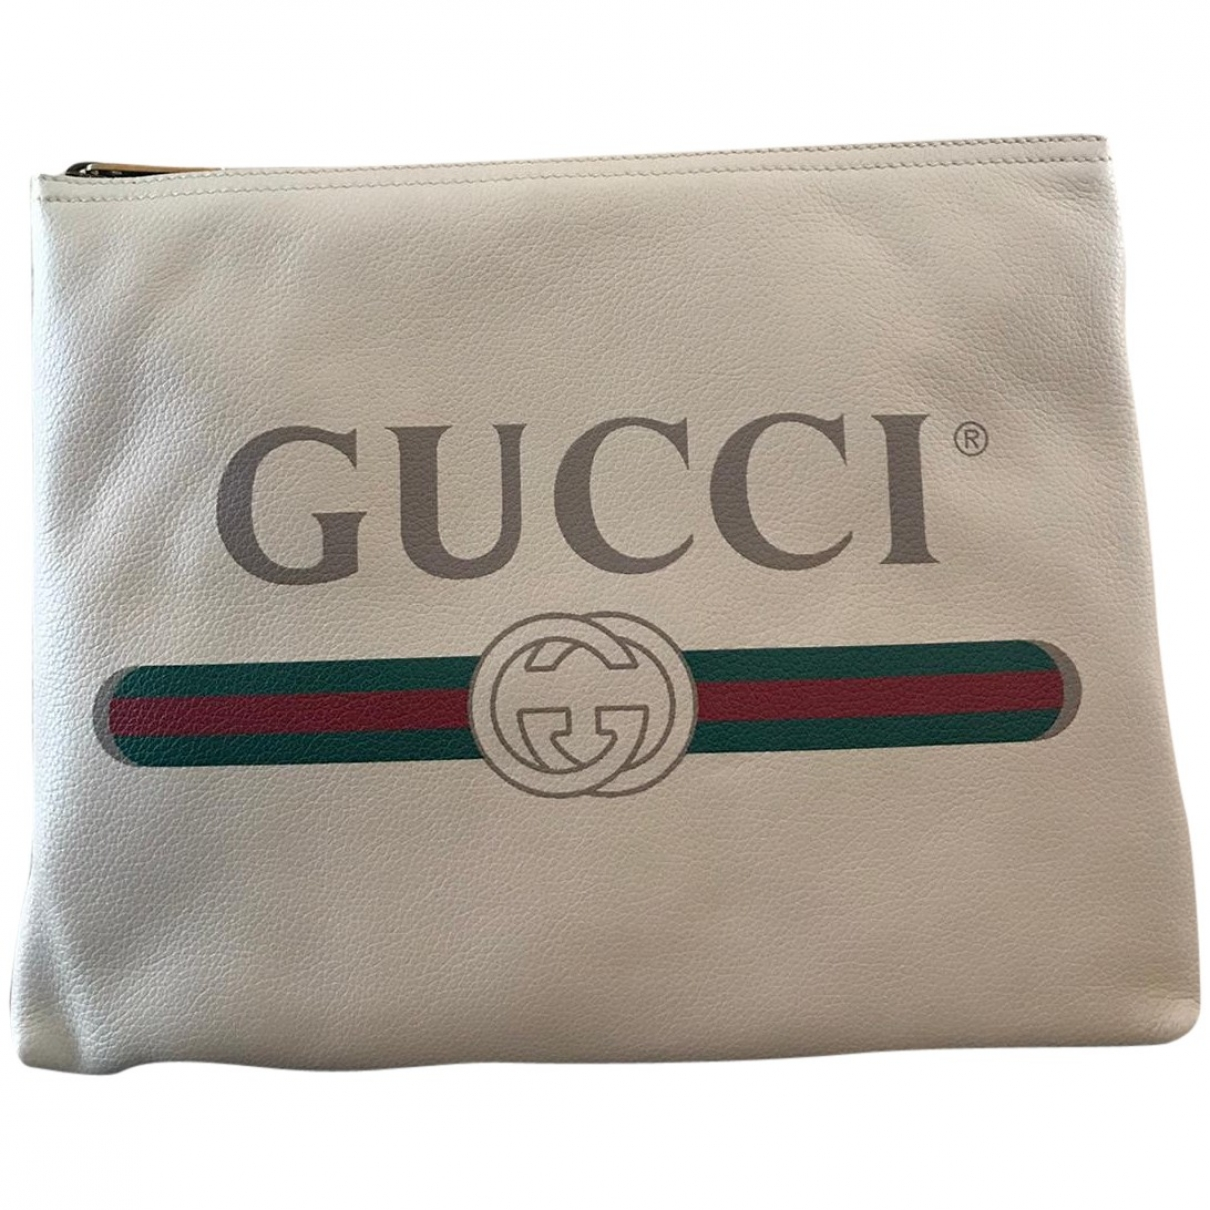 Gucci \N White Leather Clutch bag for Women \N